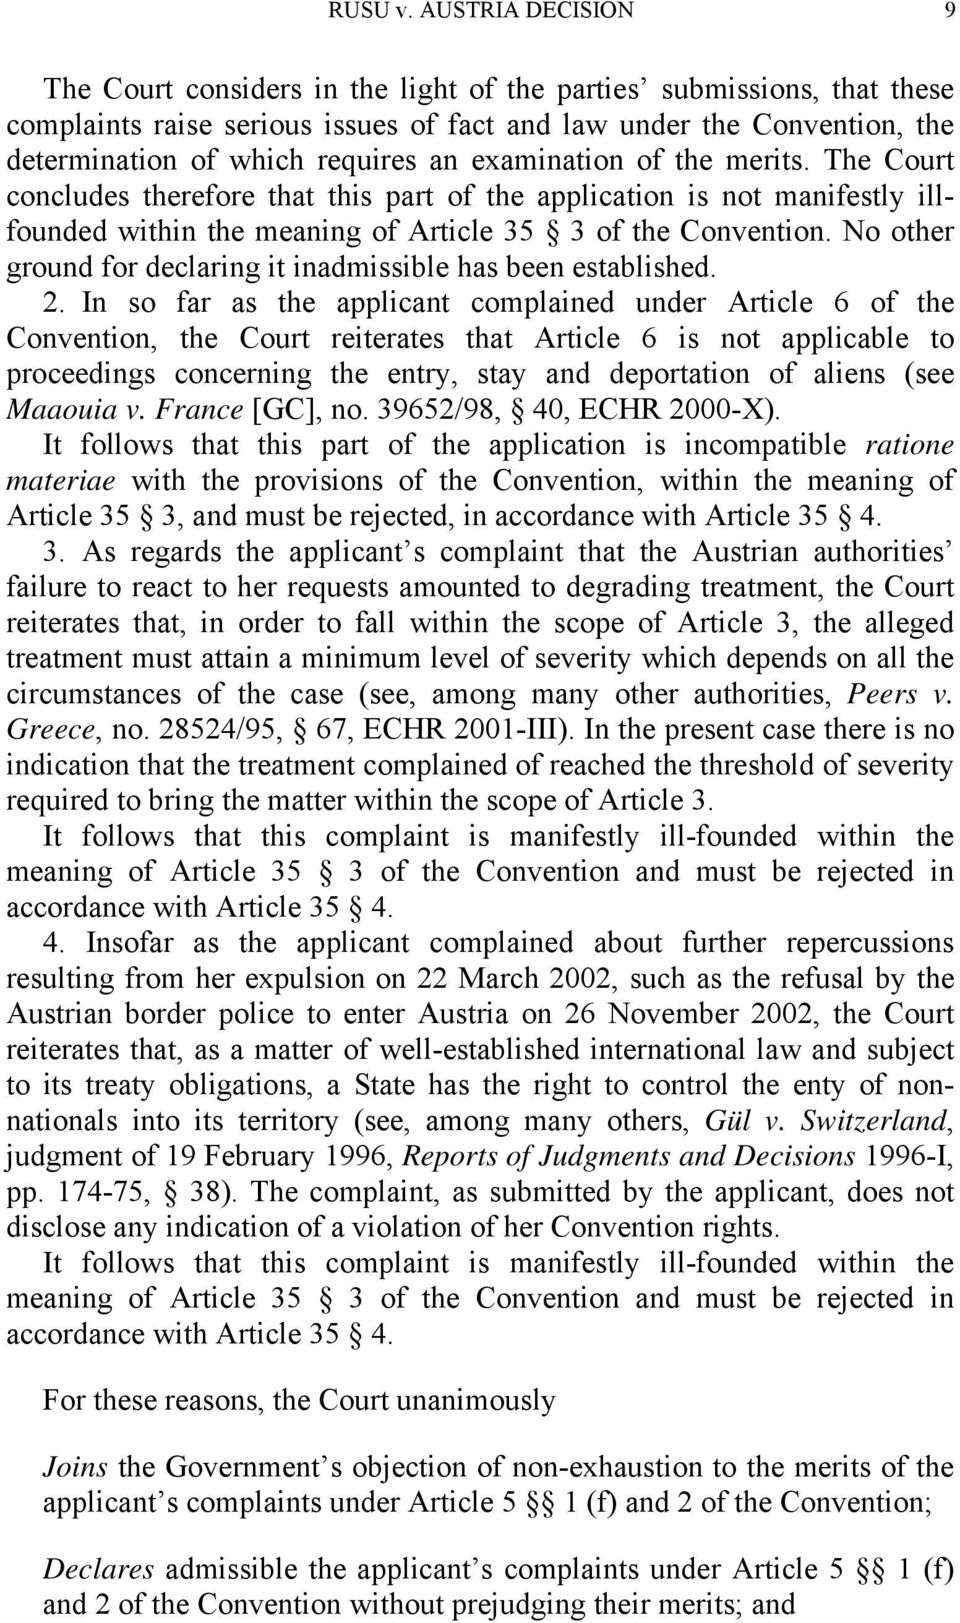 examination of the merits. The Court concludes therefore that this part of the application is not manifestly illfounded within the meaning of Article 35 3 of the Convention.